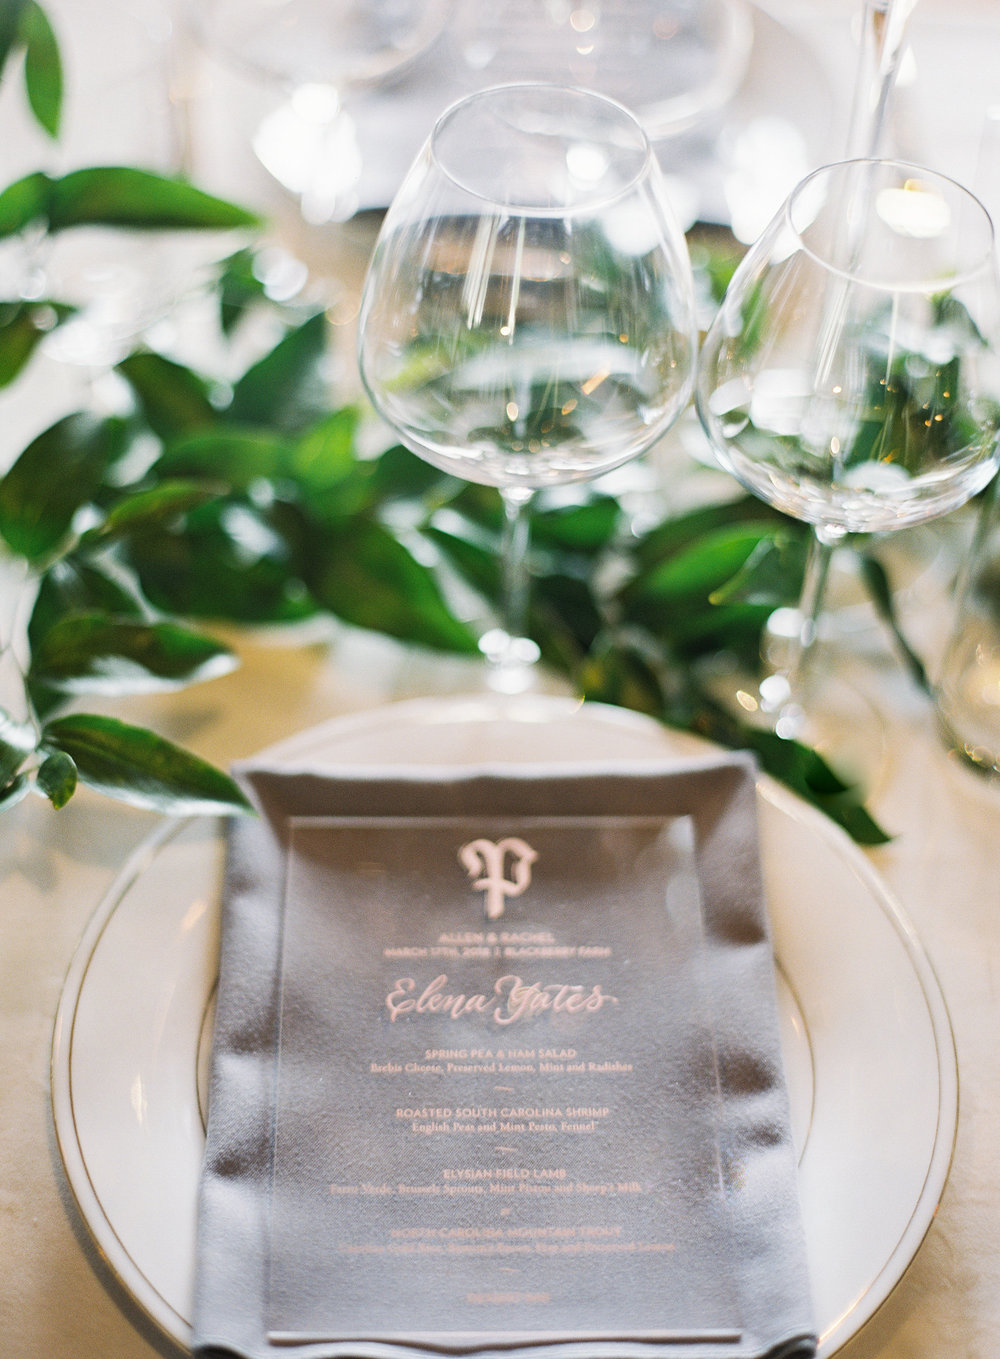 Rose gold printed acrylic wedding dinner menus, with rose gold calligraphy of each guest's name  by Chavelli www.chavelli.com